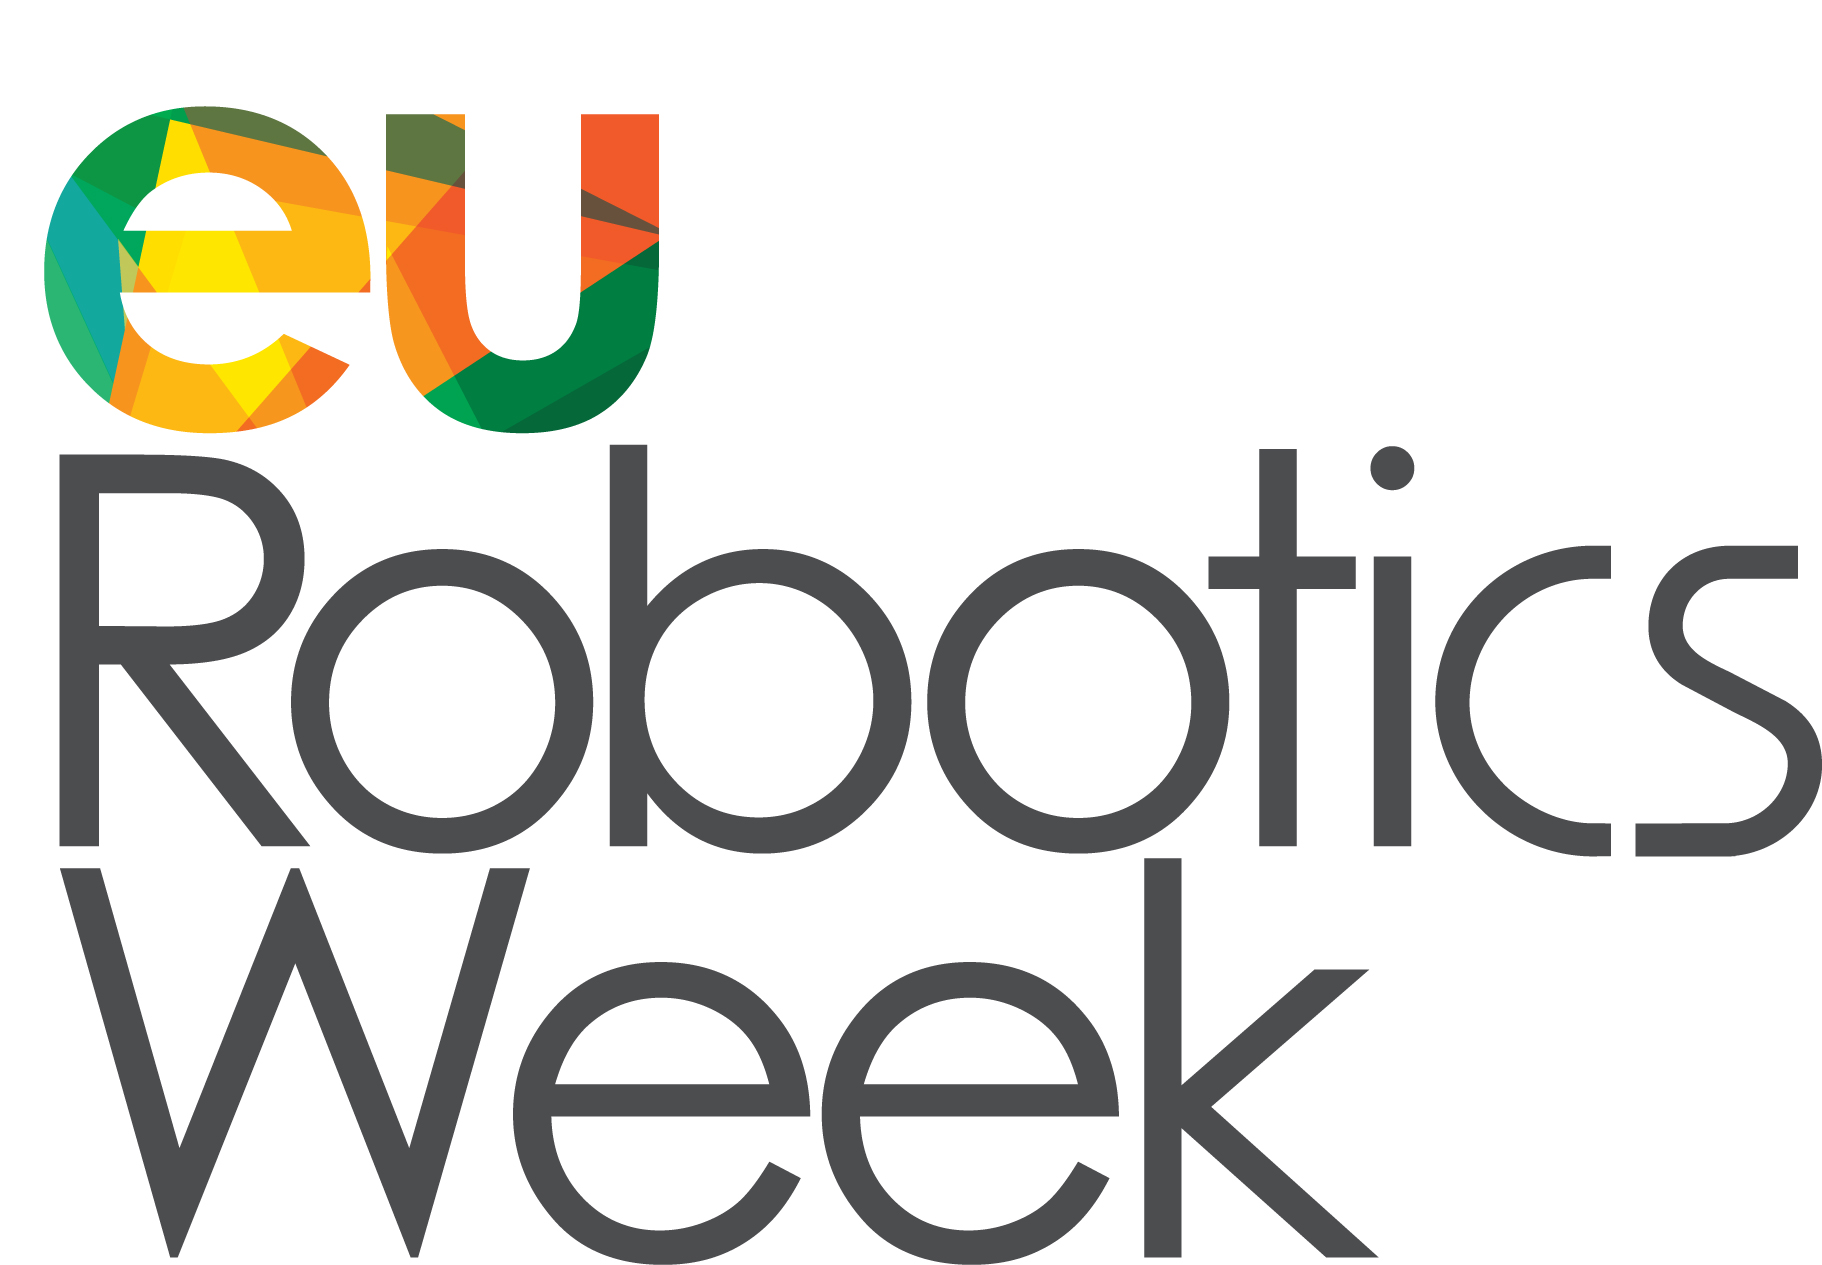 euRobotics week logo